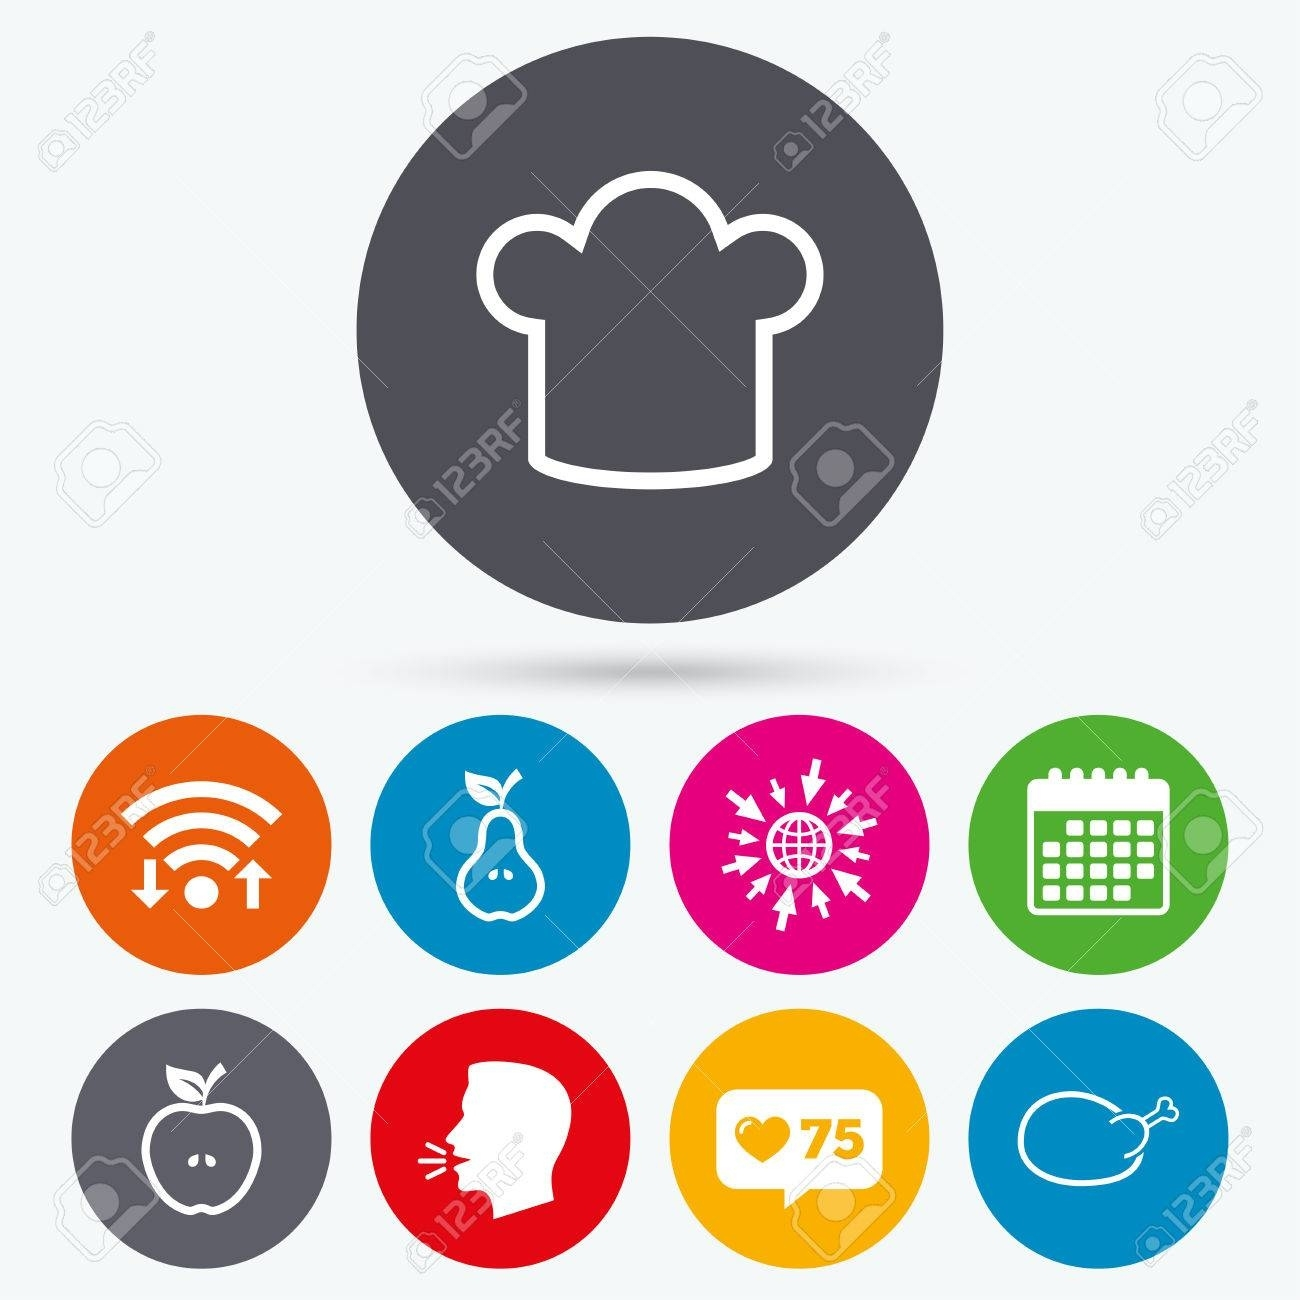 Wifi, Like Counter And Calendar Icons. Food Icons. Apple And Apple Calendar Icon Vector